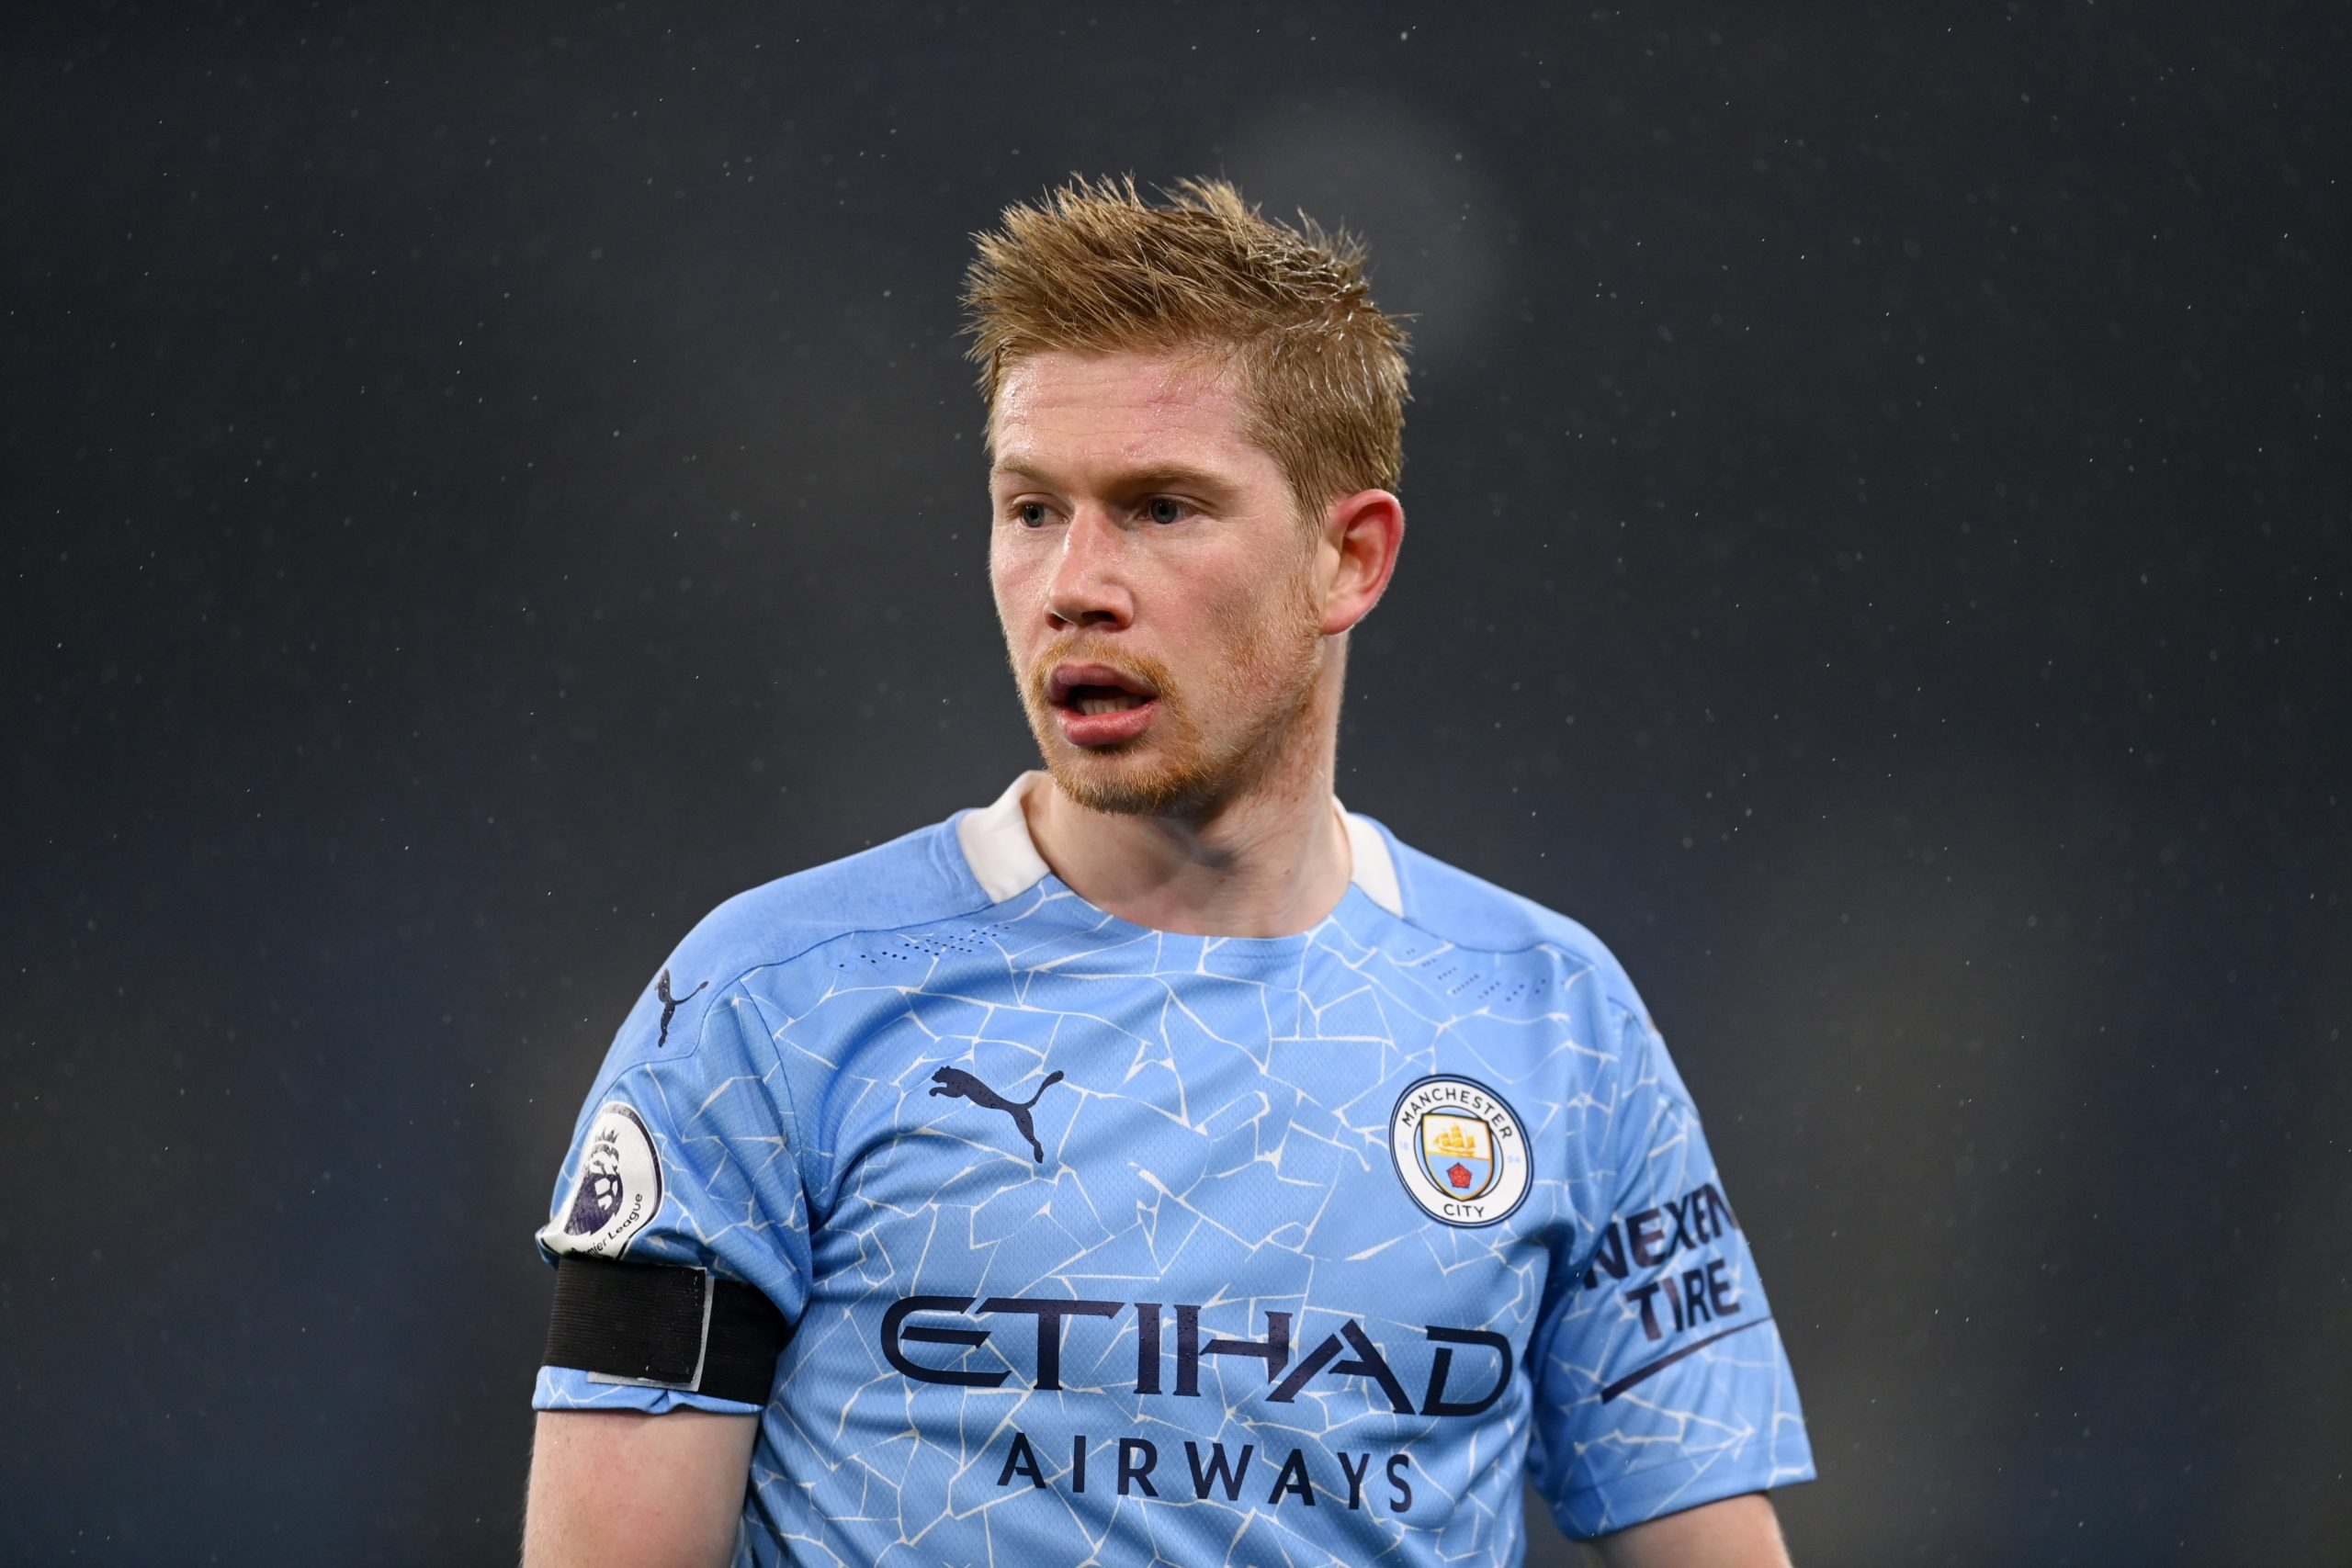 FPL Gameweek 14 injury and team news: Updates on De Bruyne, and more